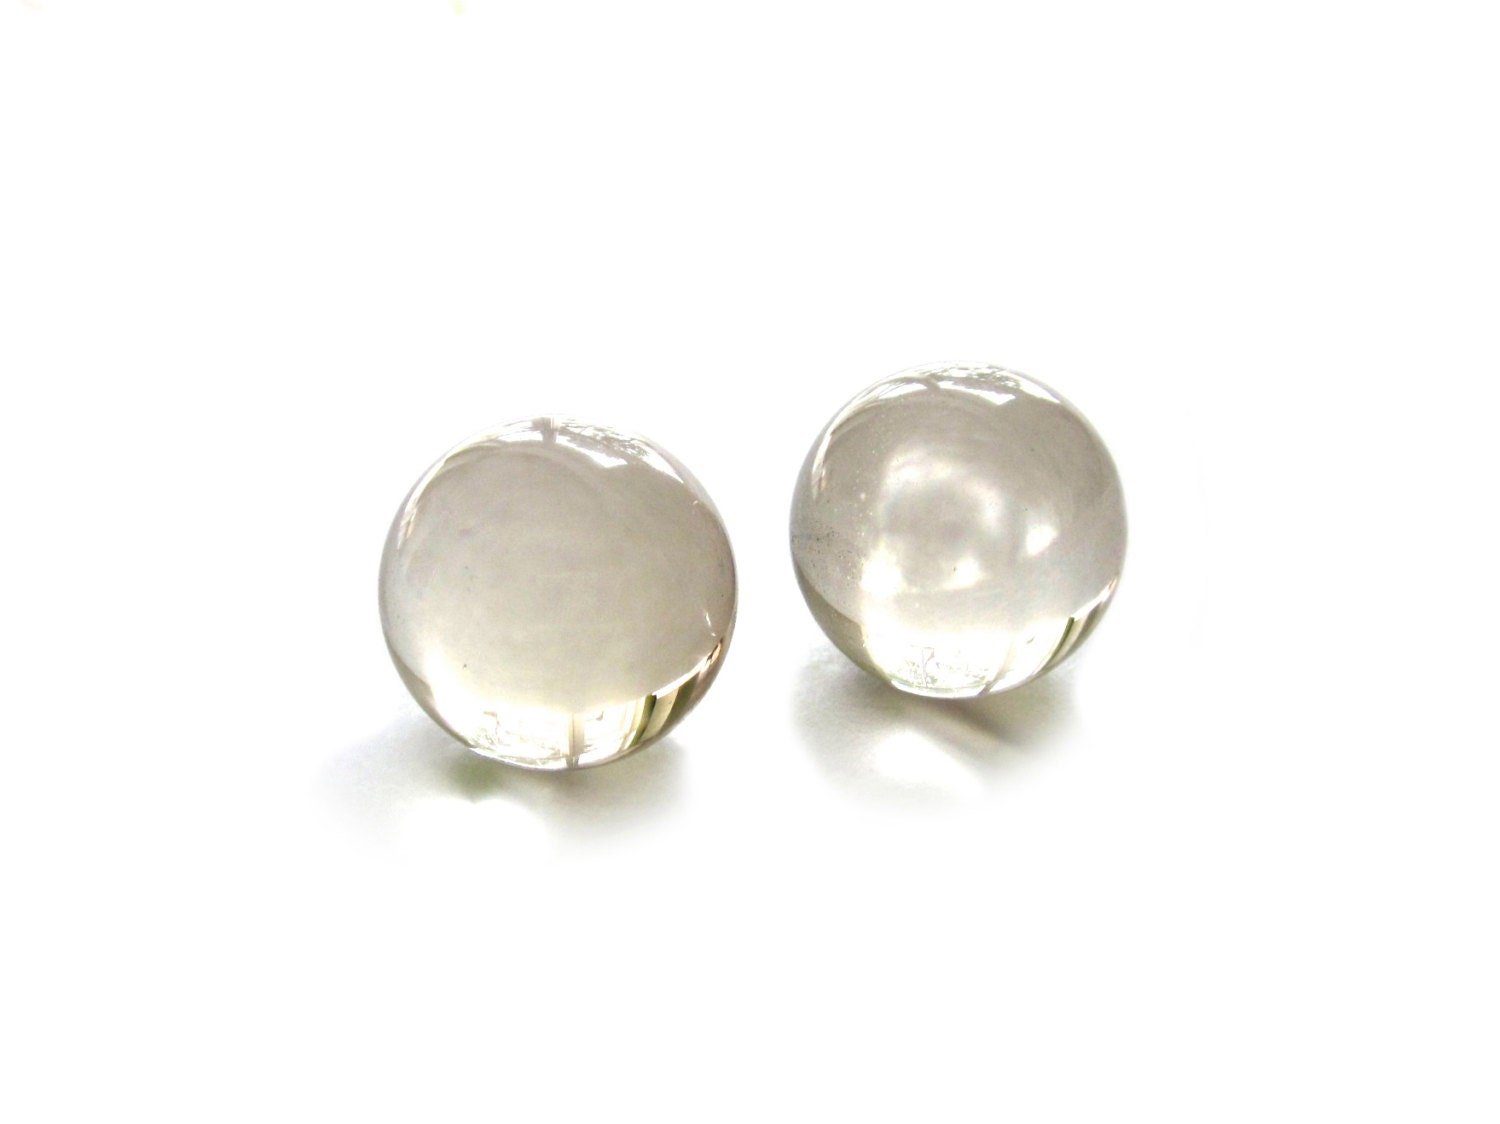 Smokey Quartz Crystal Spheres at Instant Karma